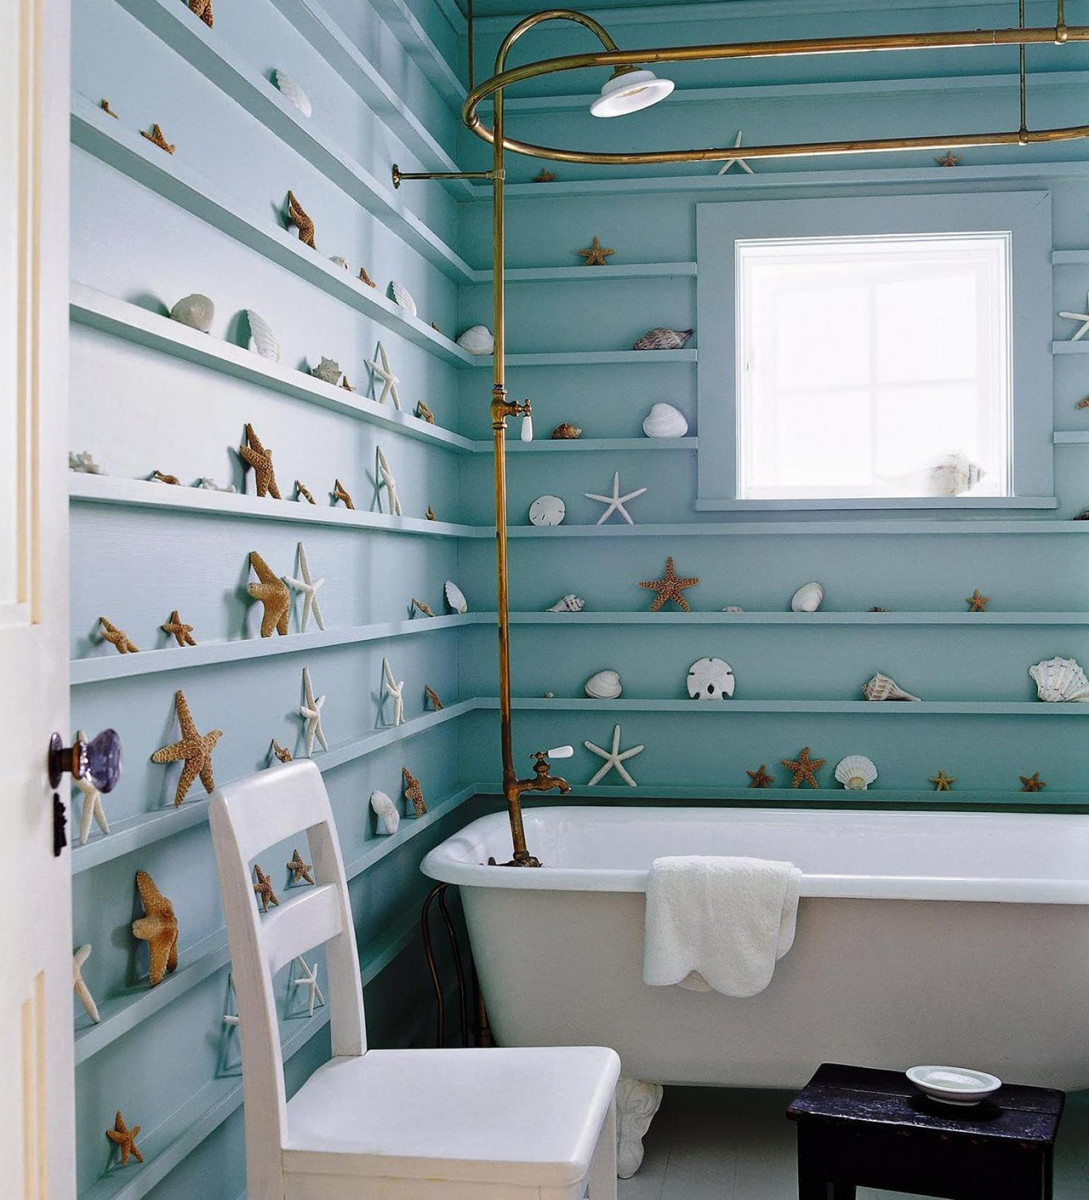 Cancer needs shelves to hide treasures. The bathroom should amp up the water and metal energy from Feng Shui.